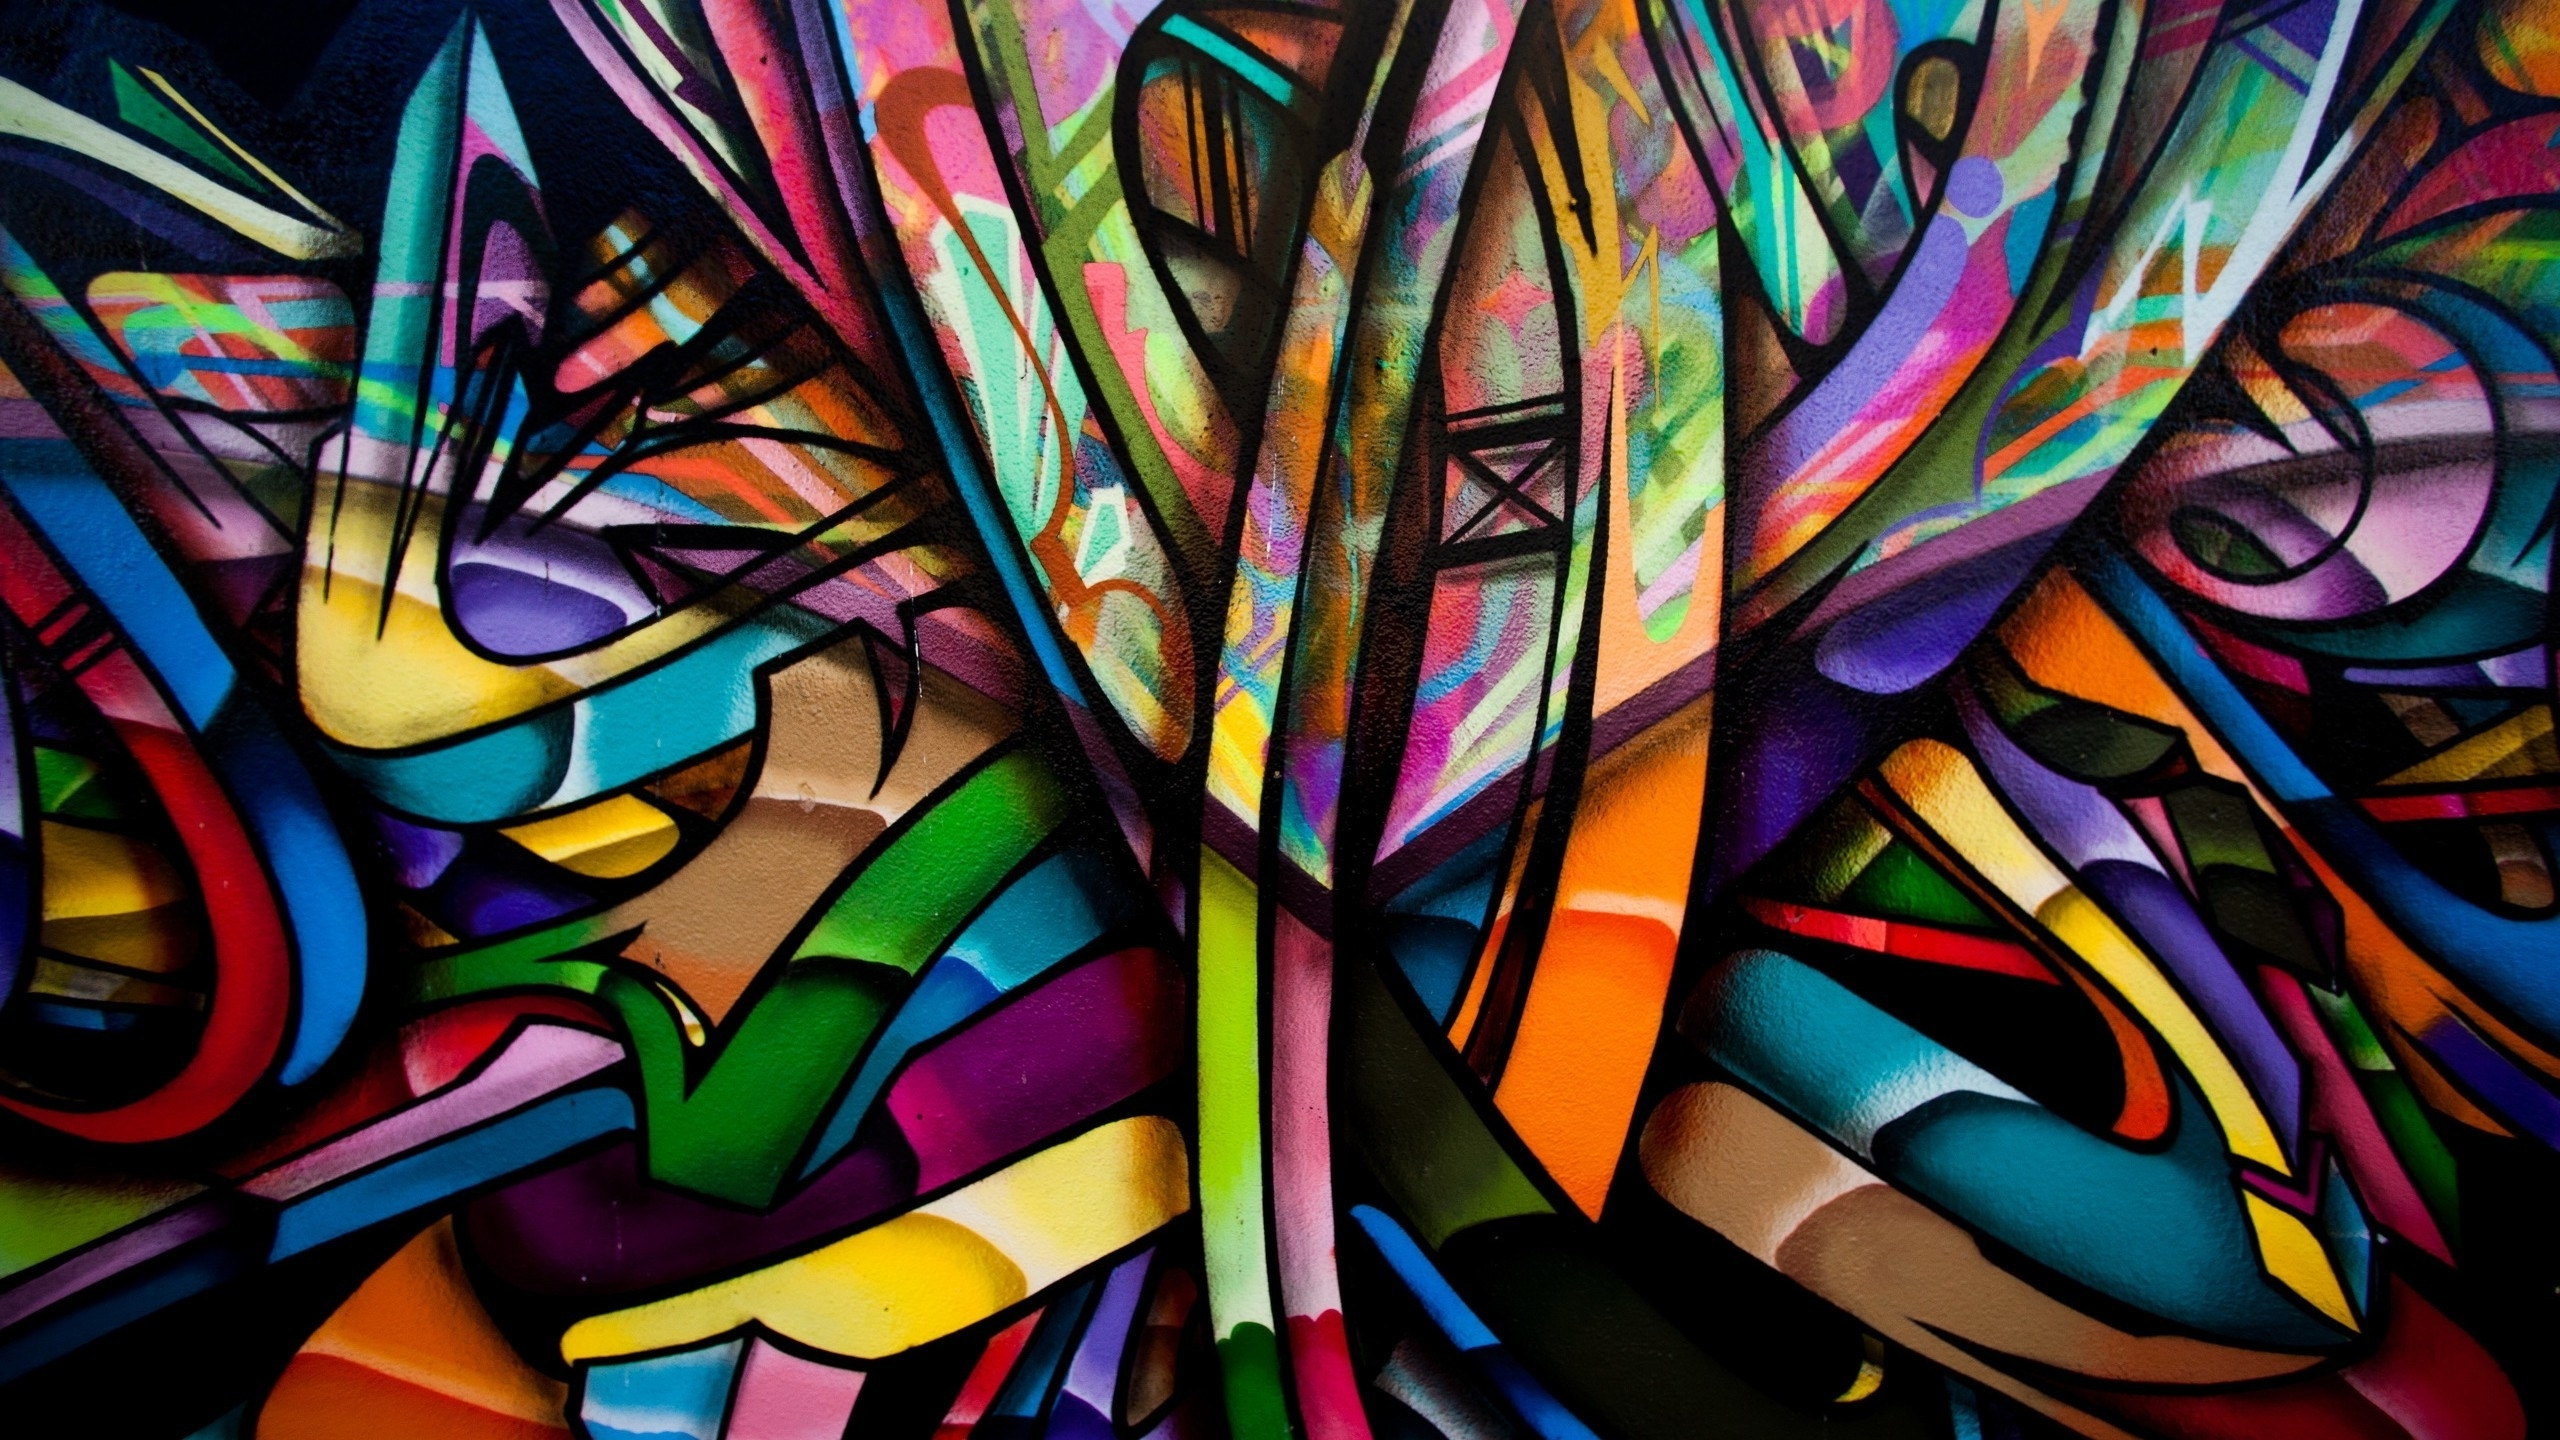 Abstract, Colorful, Graffiti, Walls, Artwork, Painting Wallpapers Within Best And Newest Abstract Graffiti Wall Art (View 14 of 20)